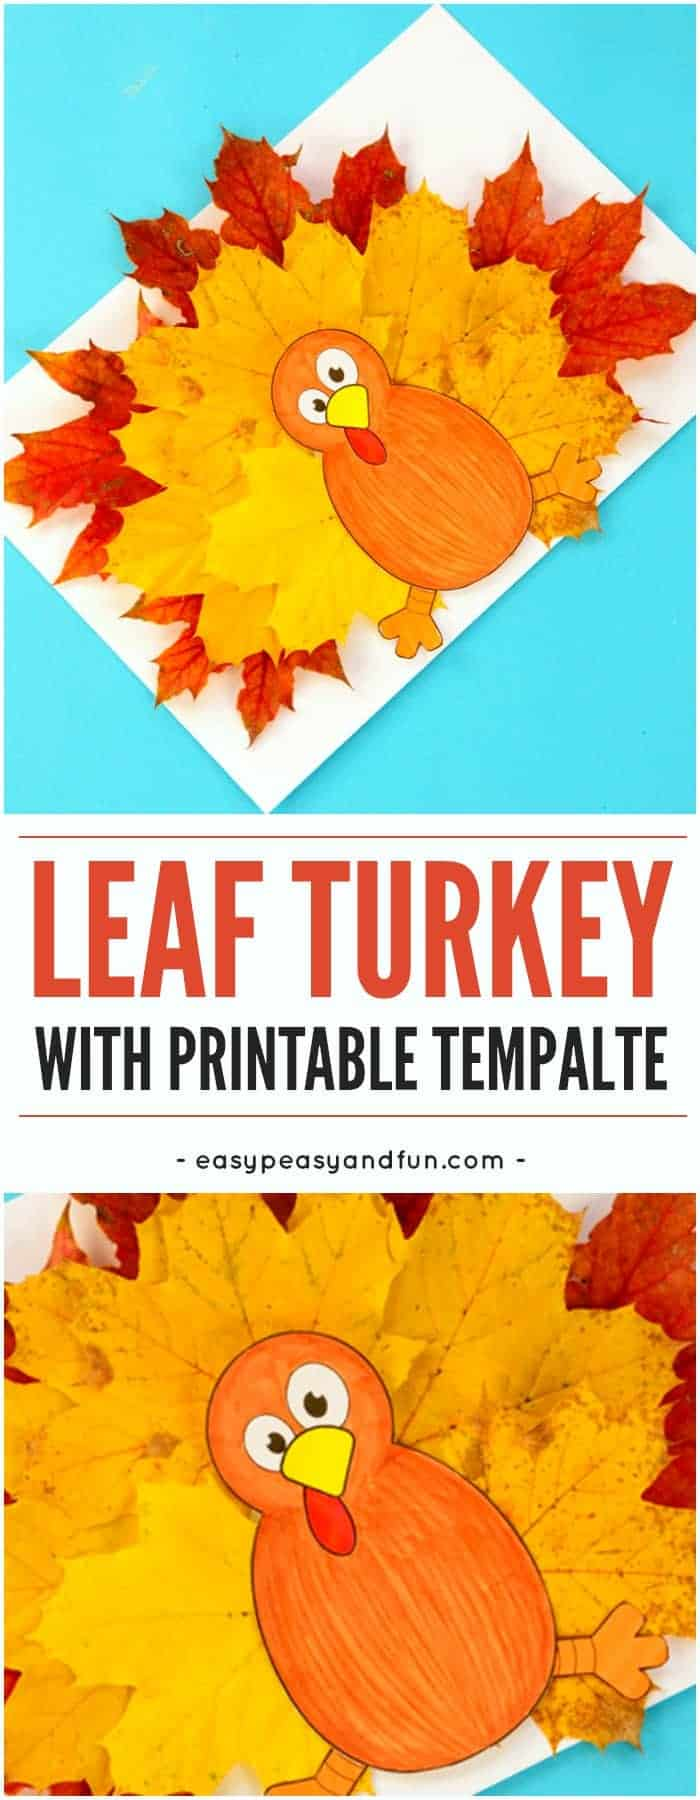 Layered leaf turkey craft